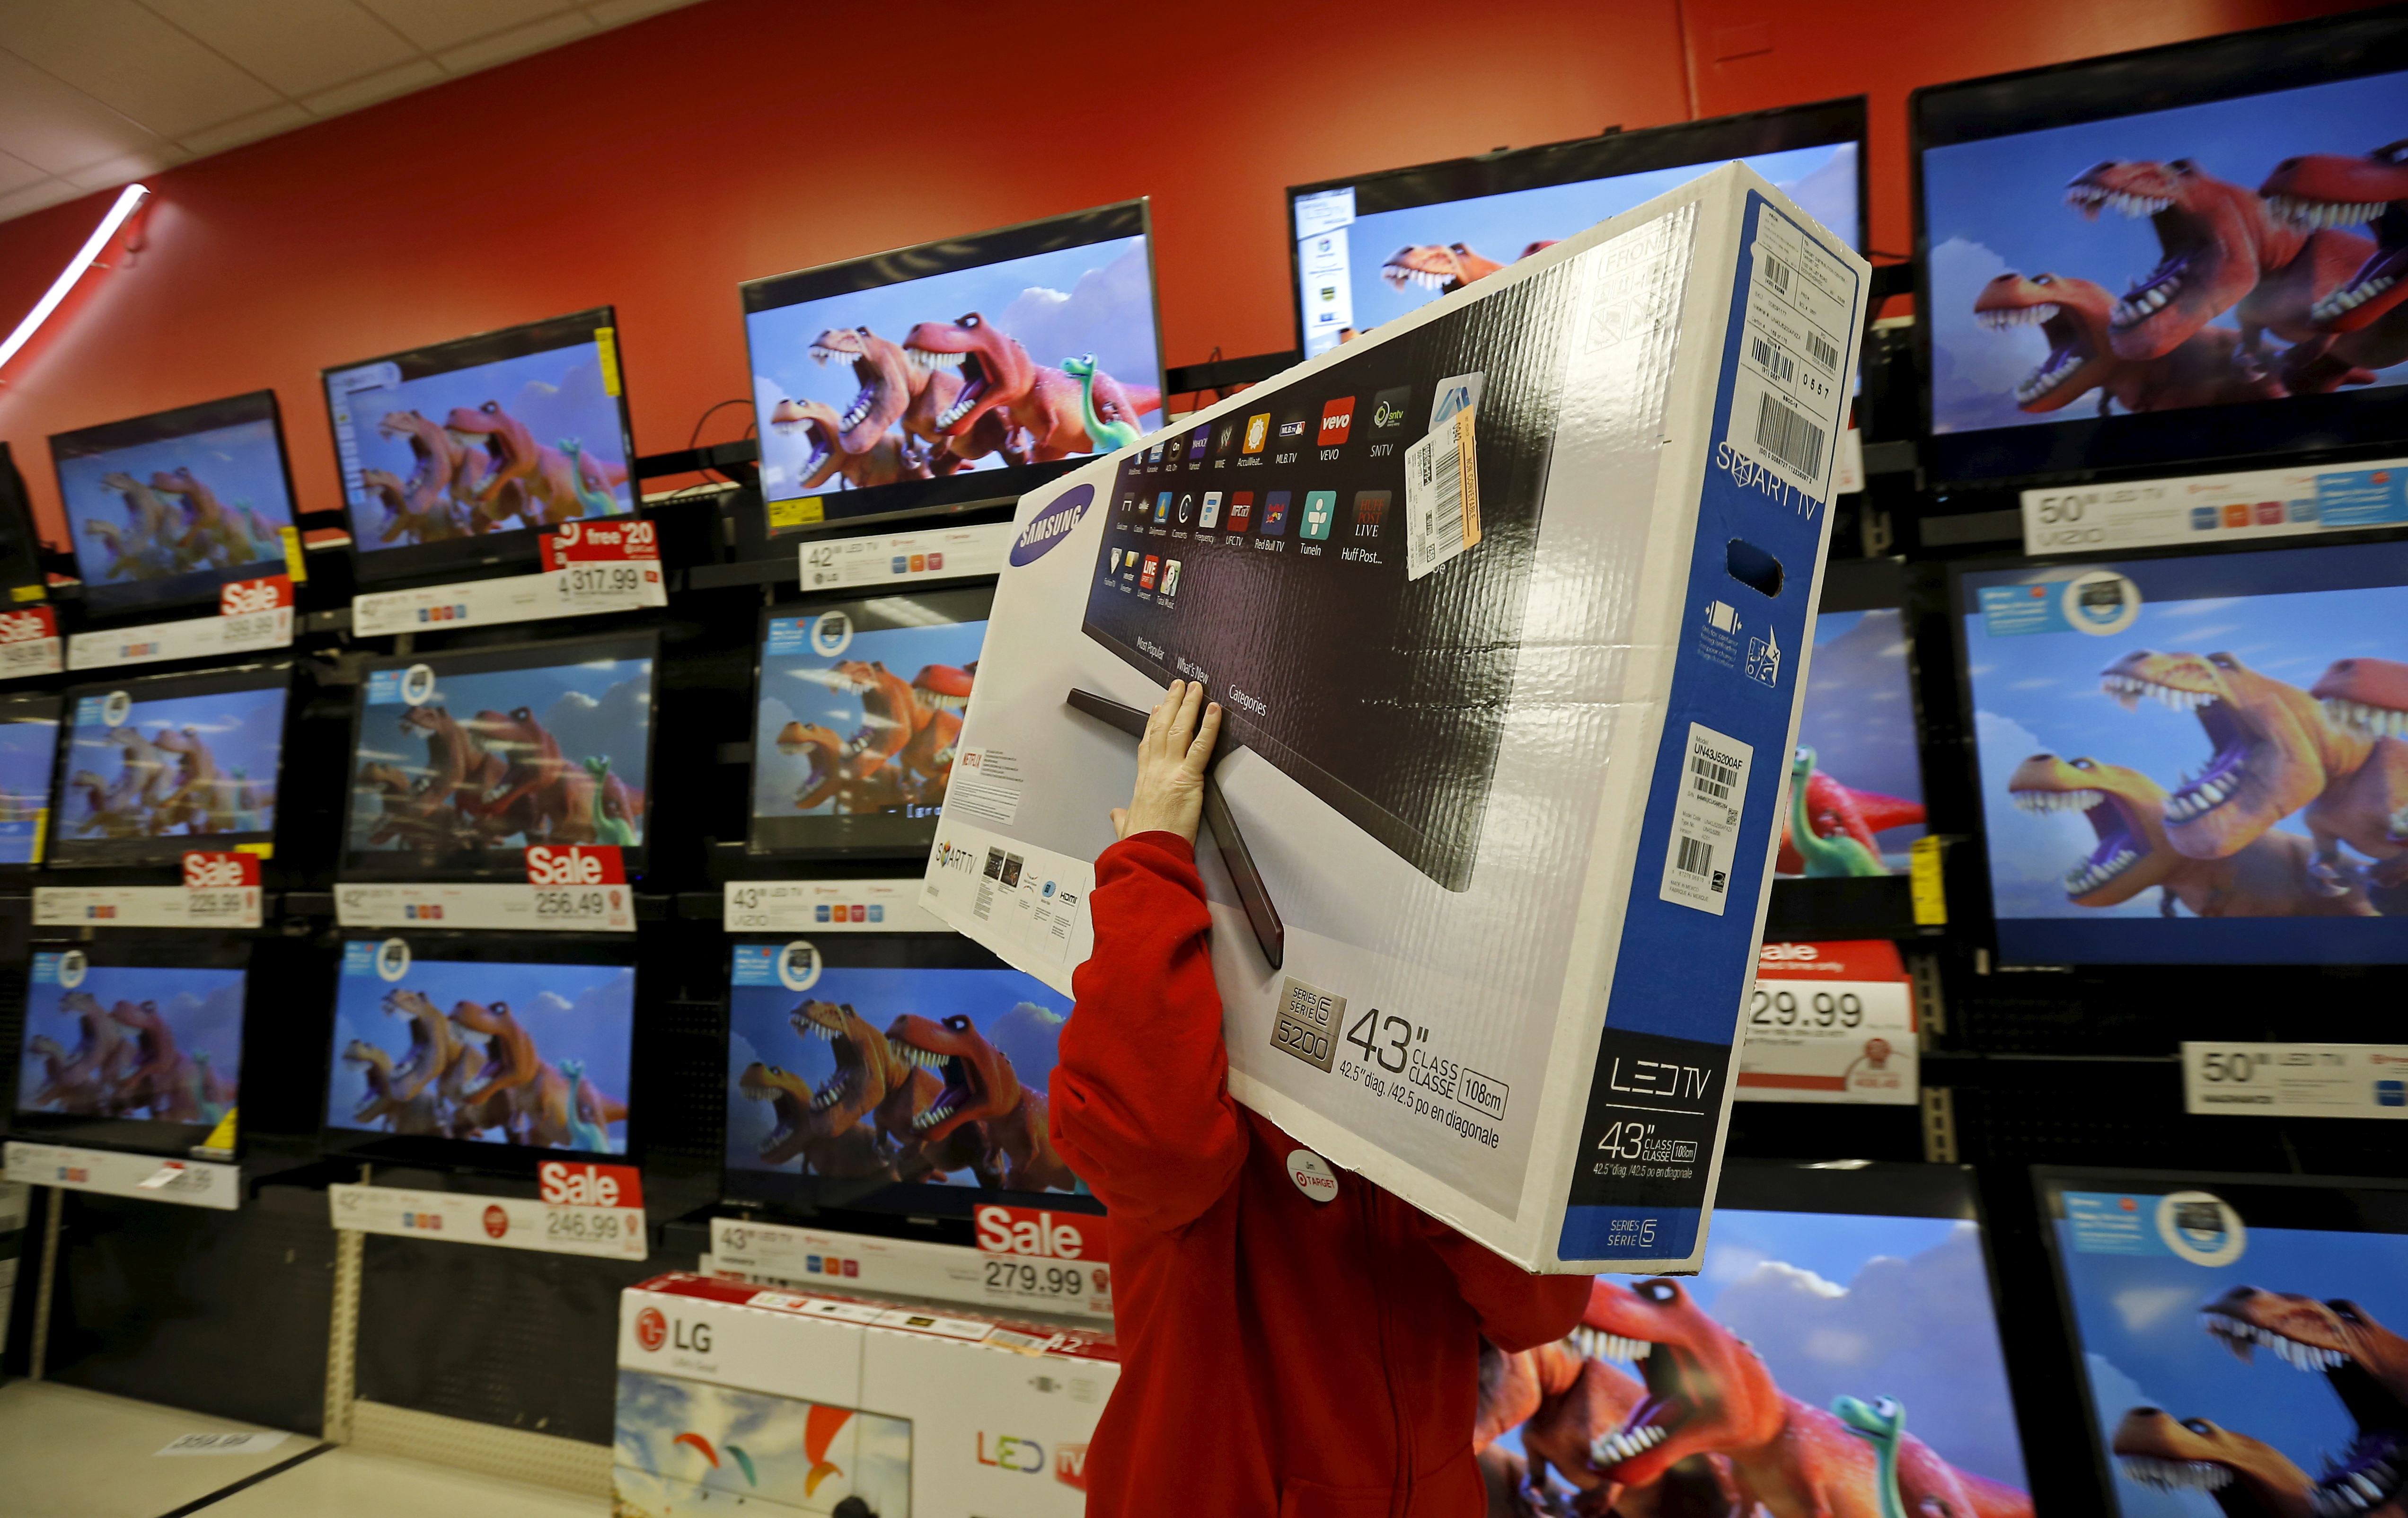 A worker carries a television for a customer who made a purchase during Black Friday Shopping at a Target store in Chicago, Illinois, November 27, 2015.